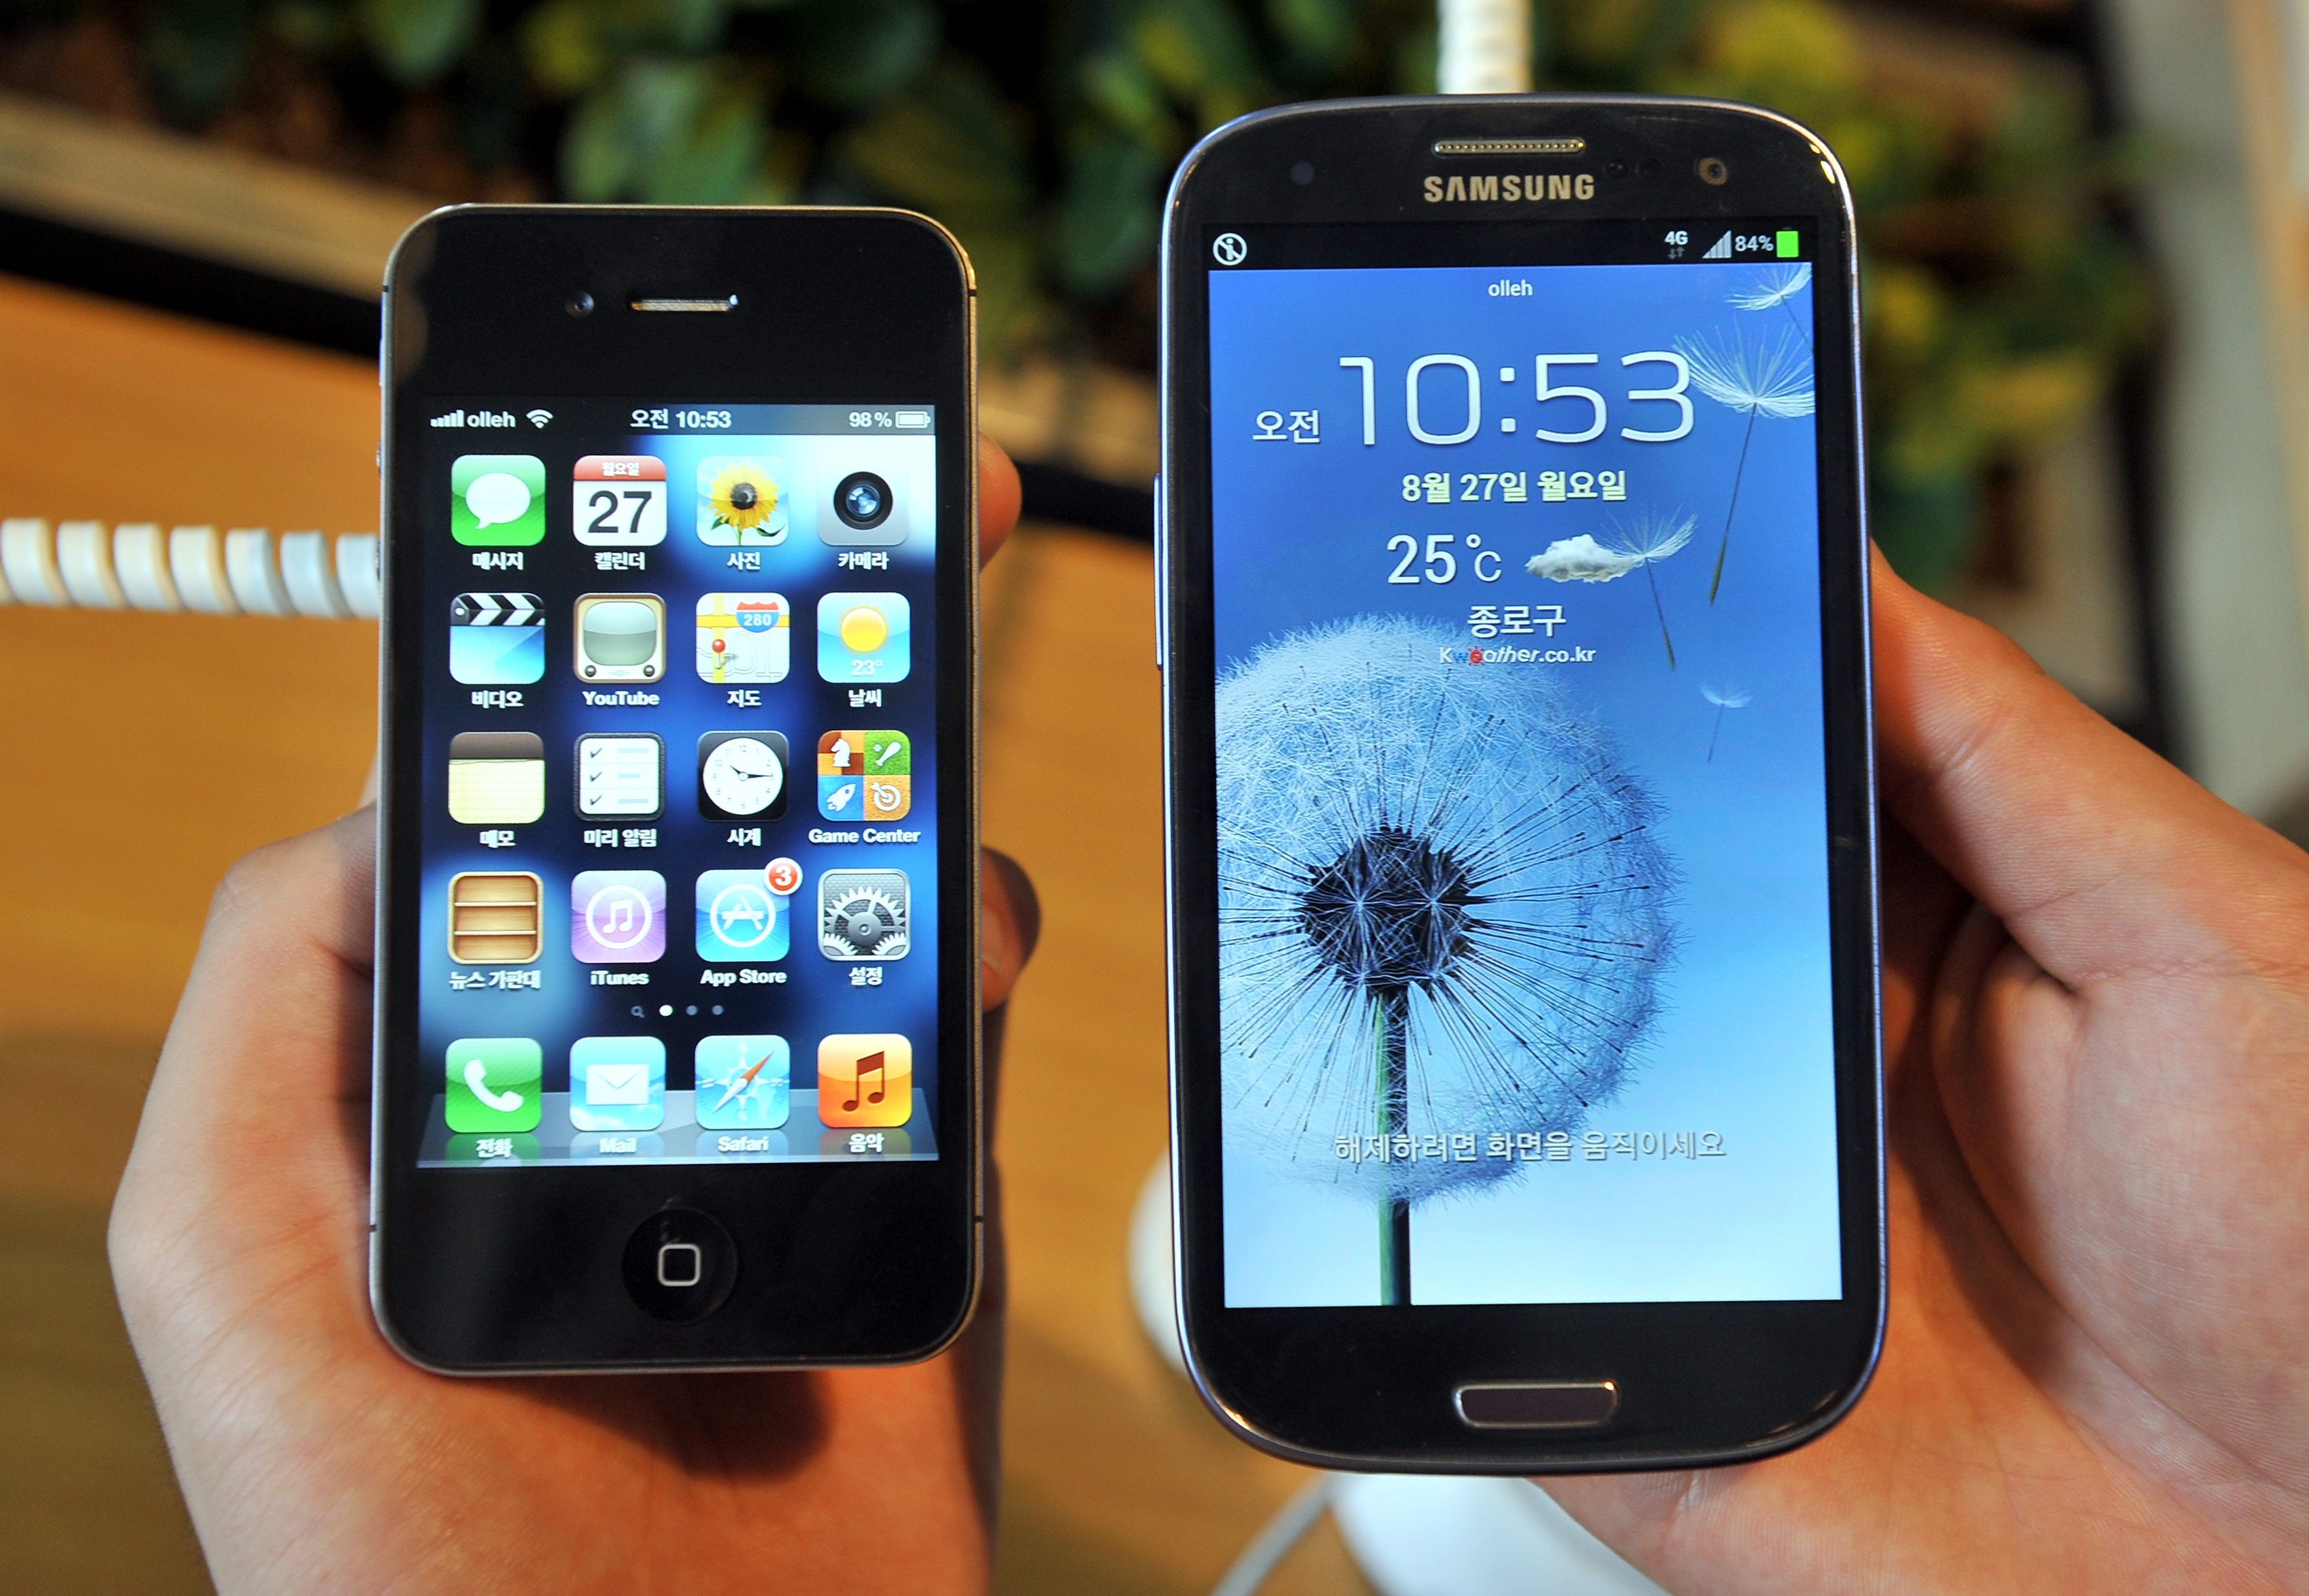 Apple 41.6% in US Smartphones, Samsung 26.7%, Android Down, iOS Up